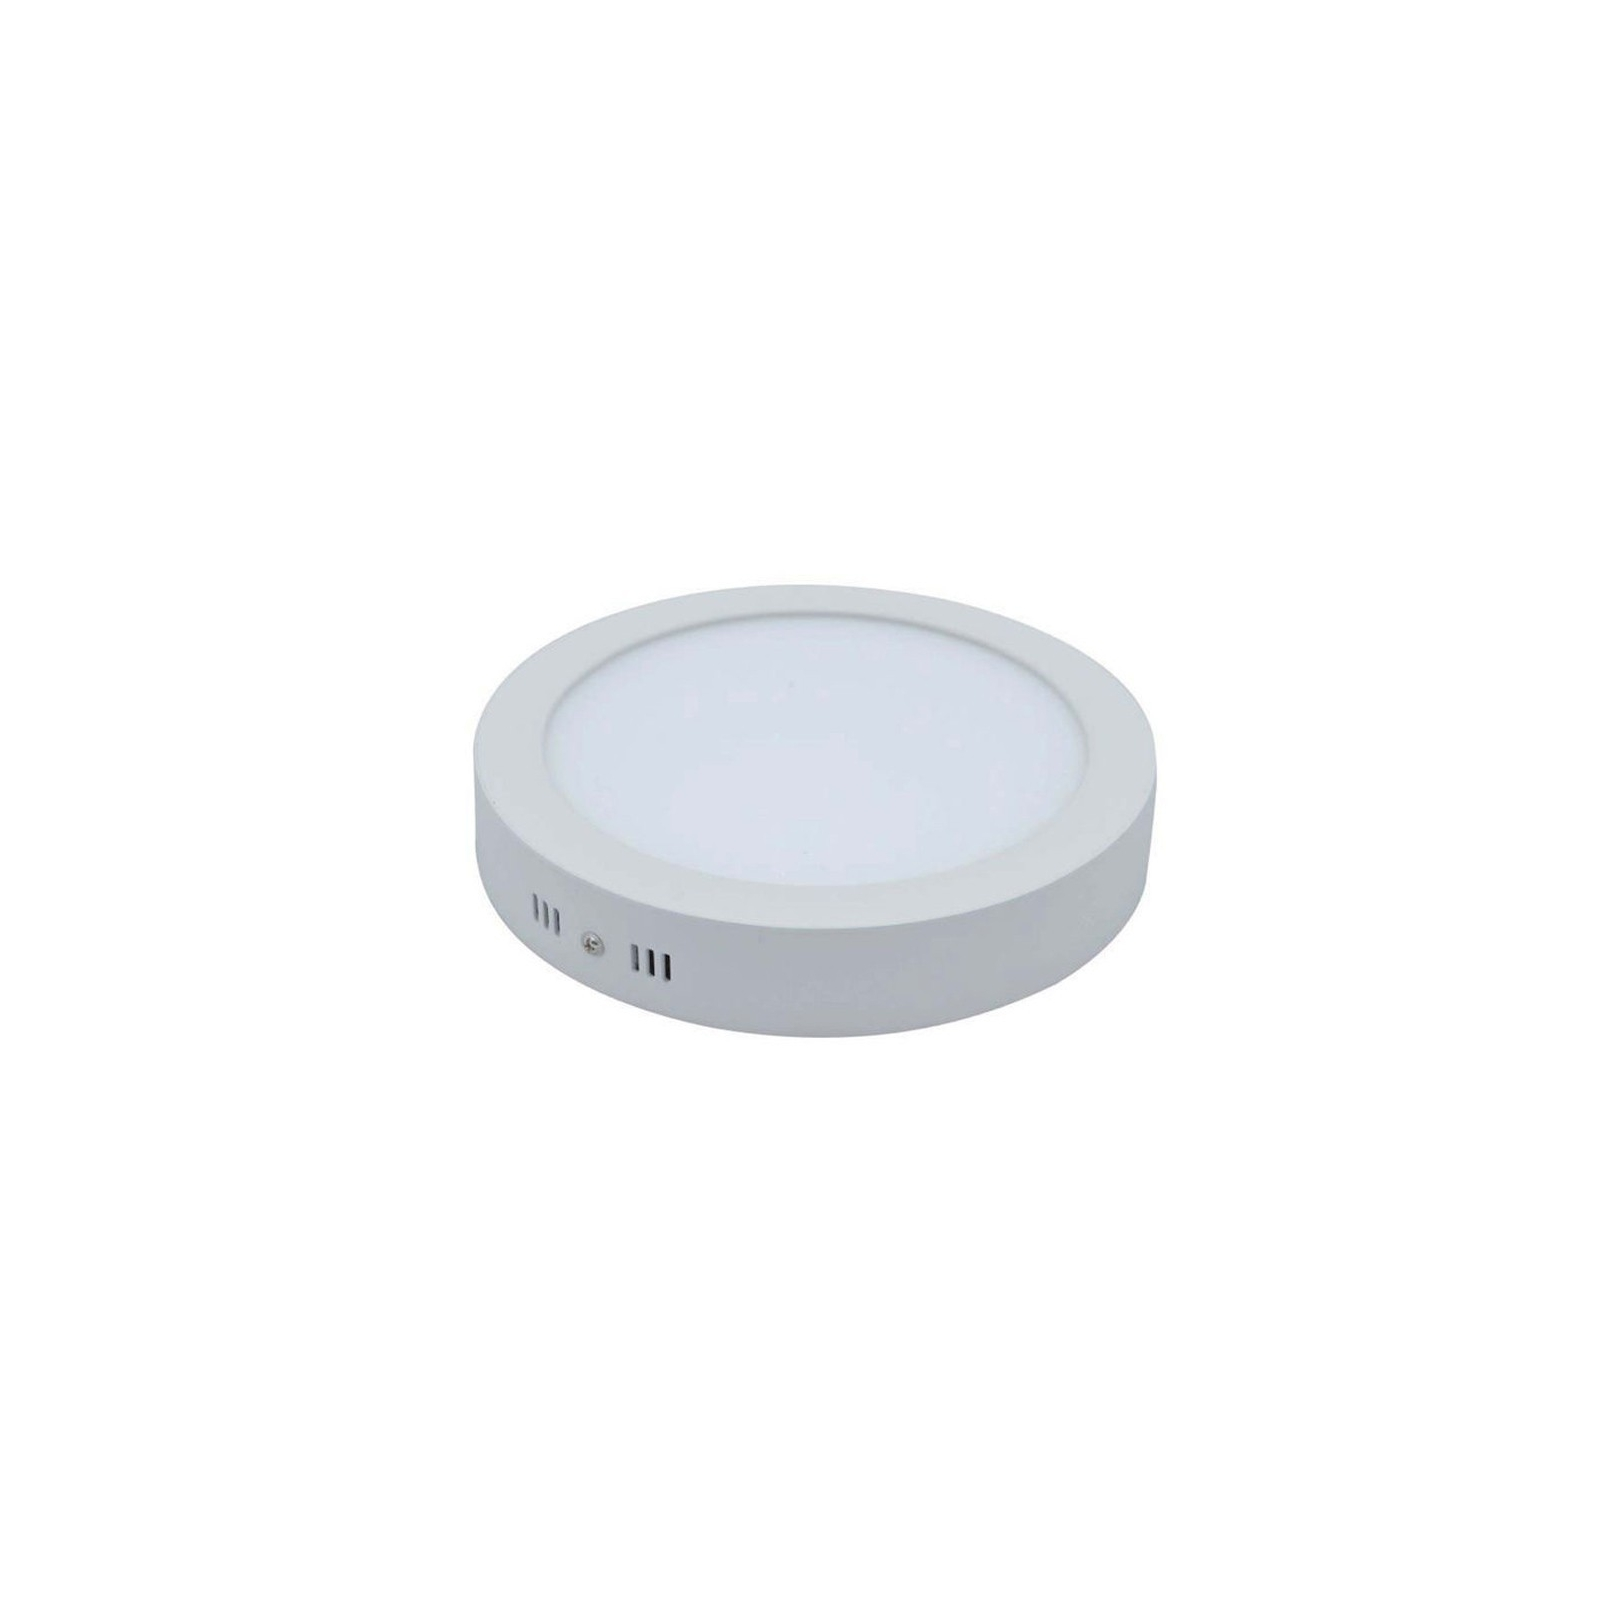 HUBLOT LED 6W ROND BLANC FROID INTERIEUR IP20